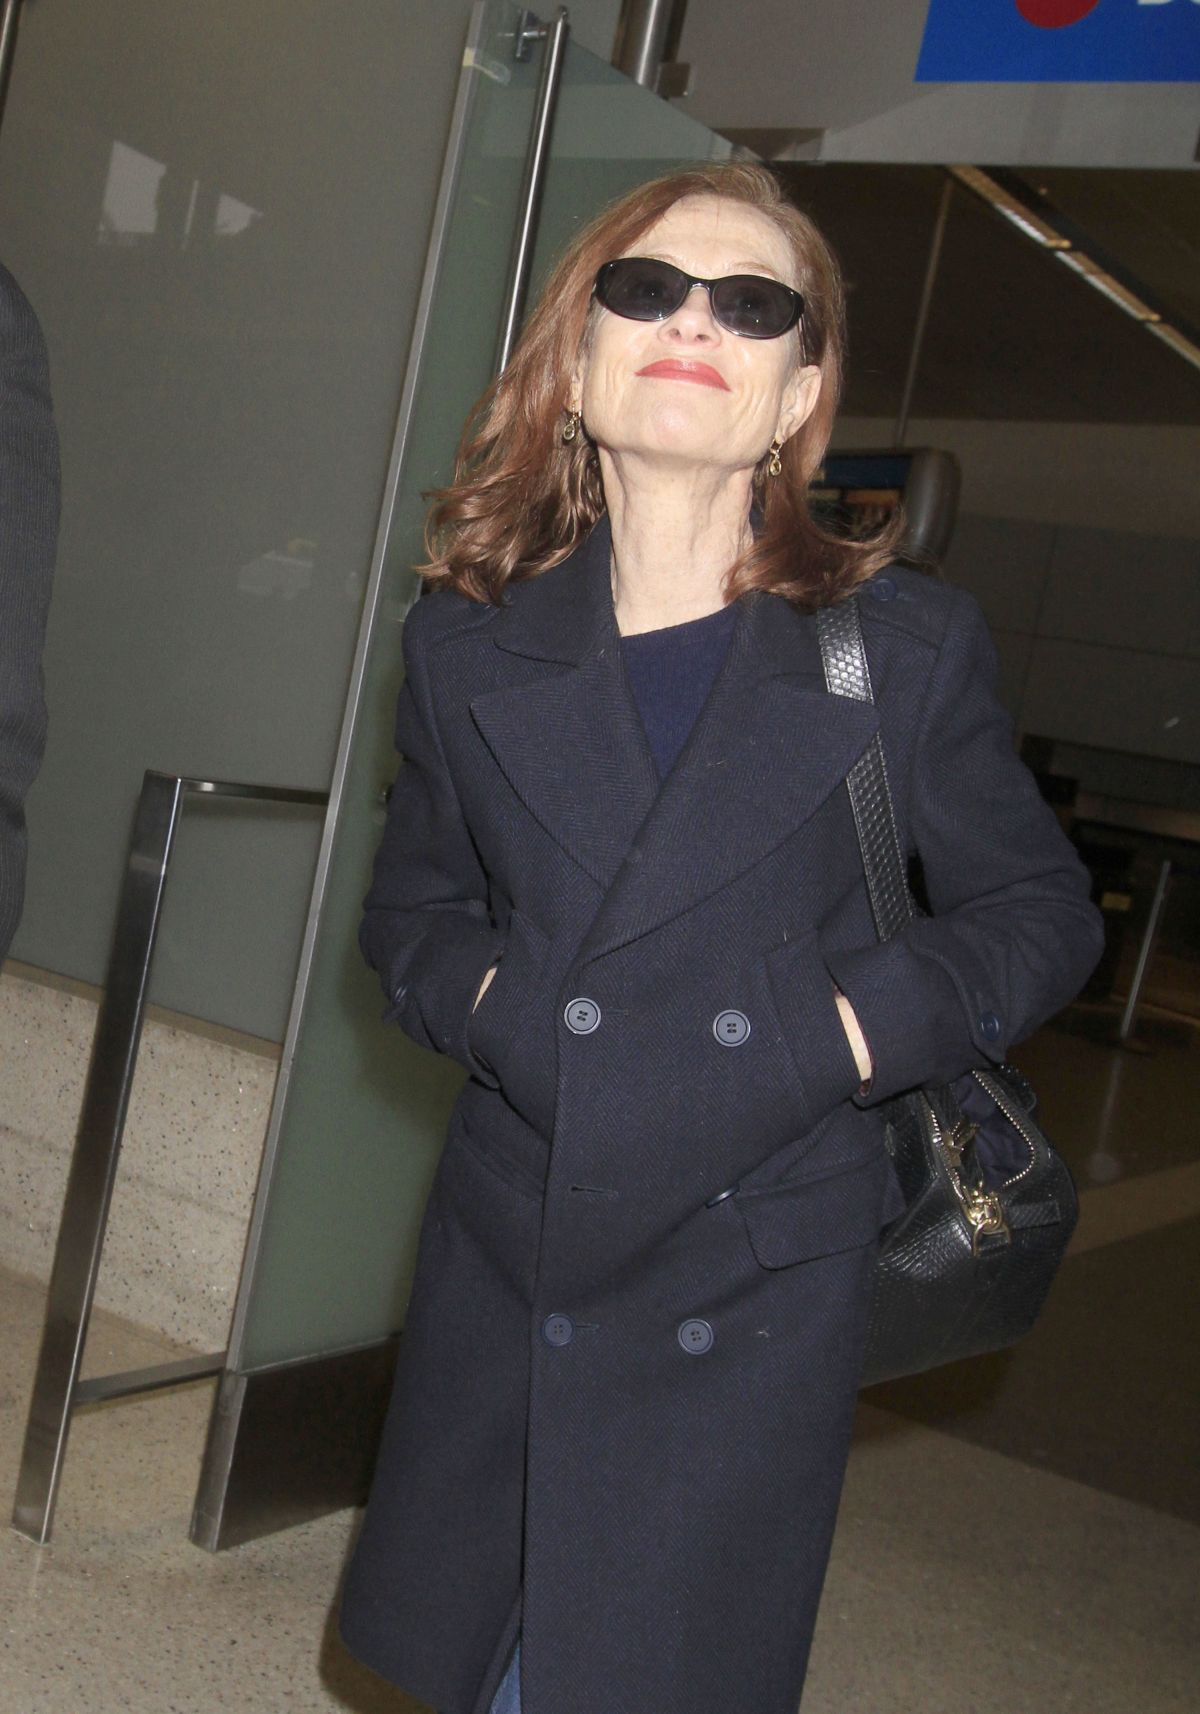 ISABELLE HUPPERT at LAX Airport in Los Angeles 02/03/2017